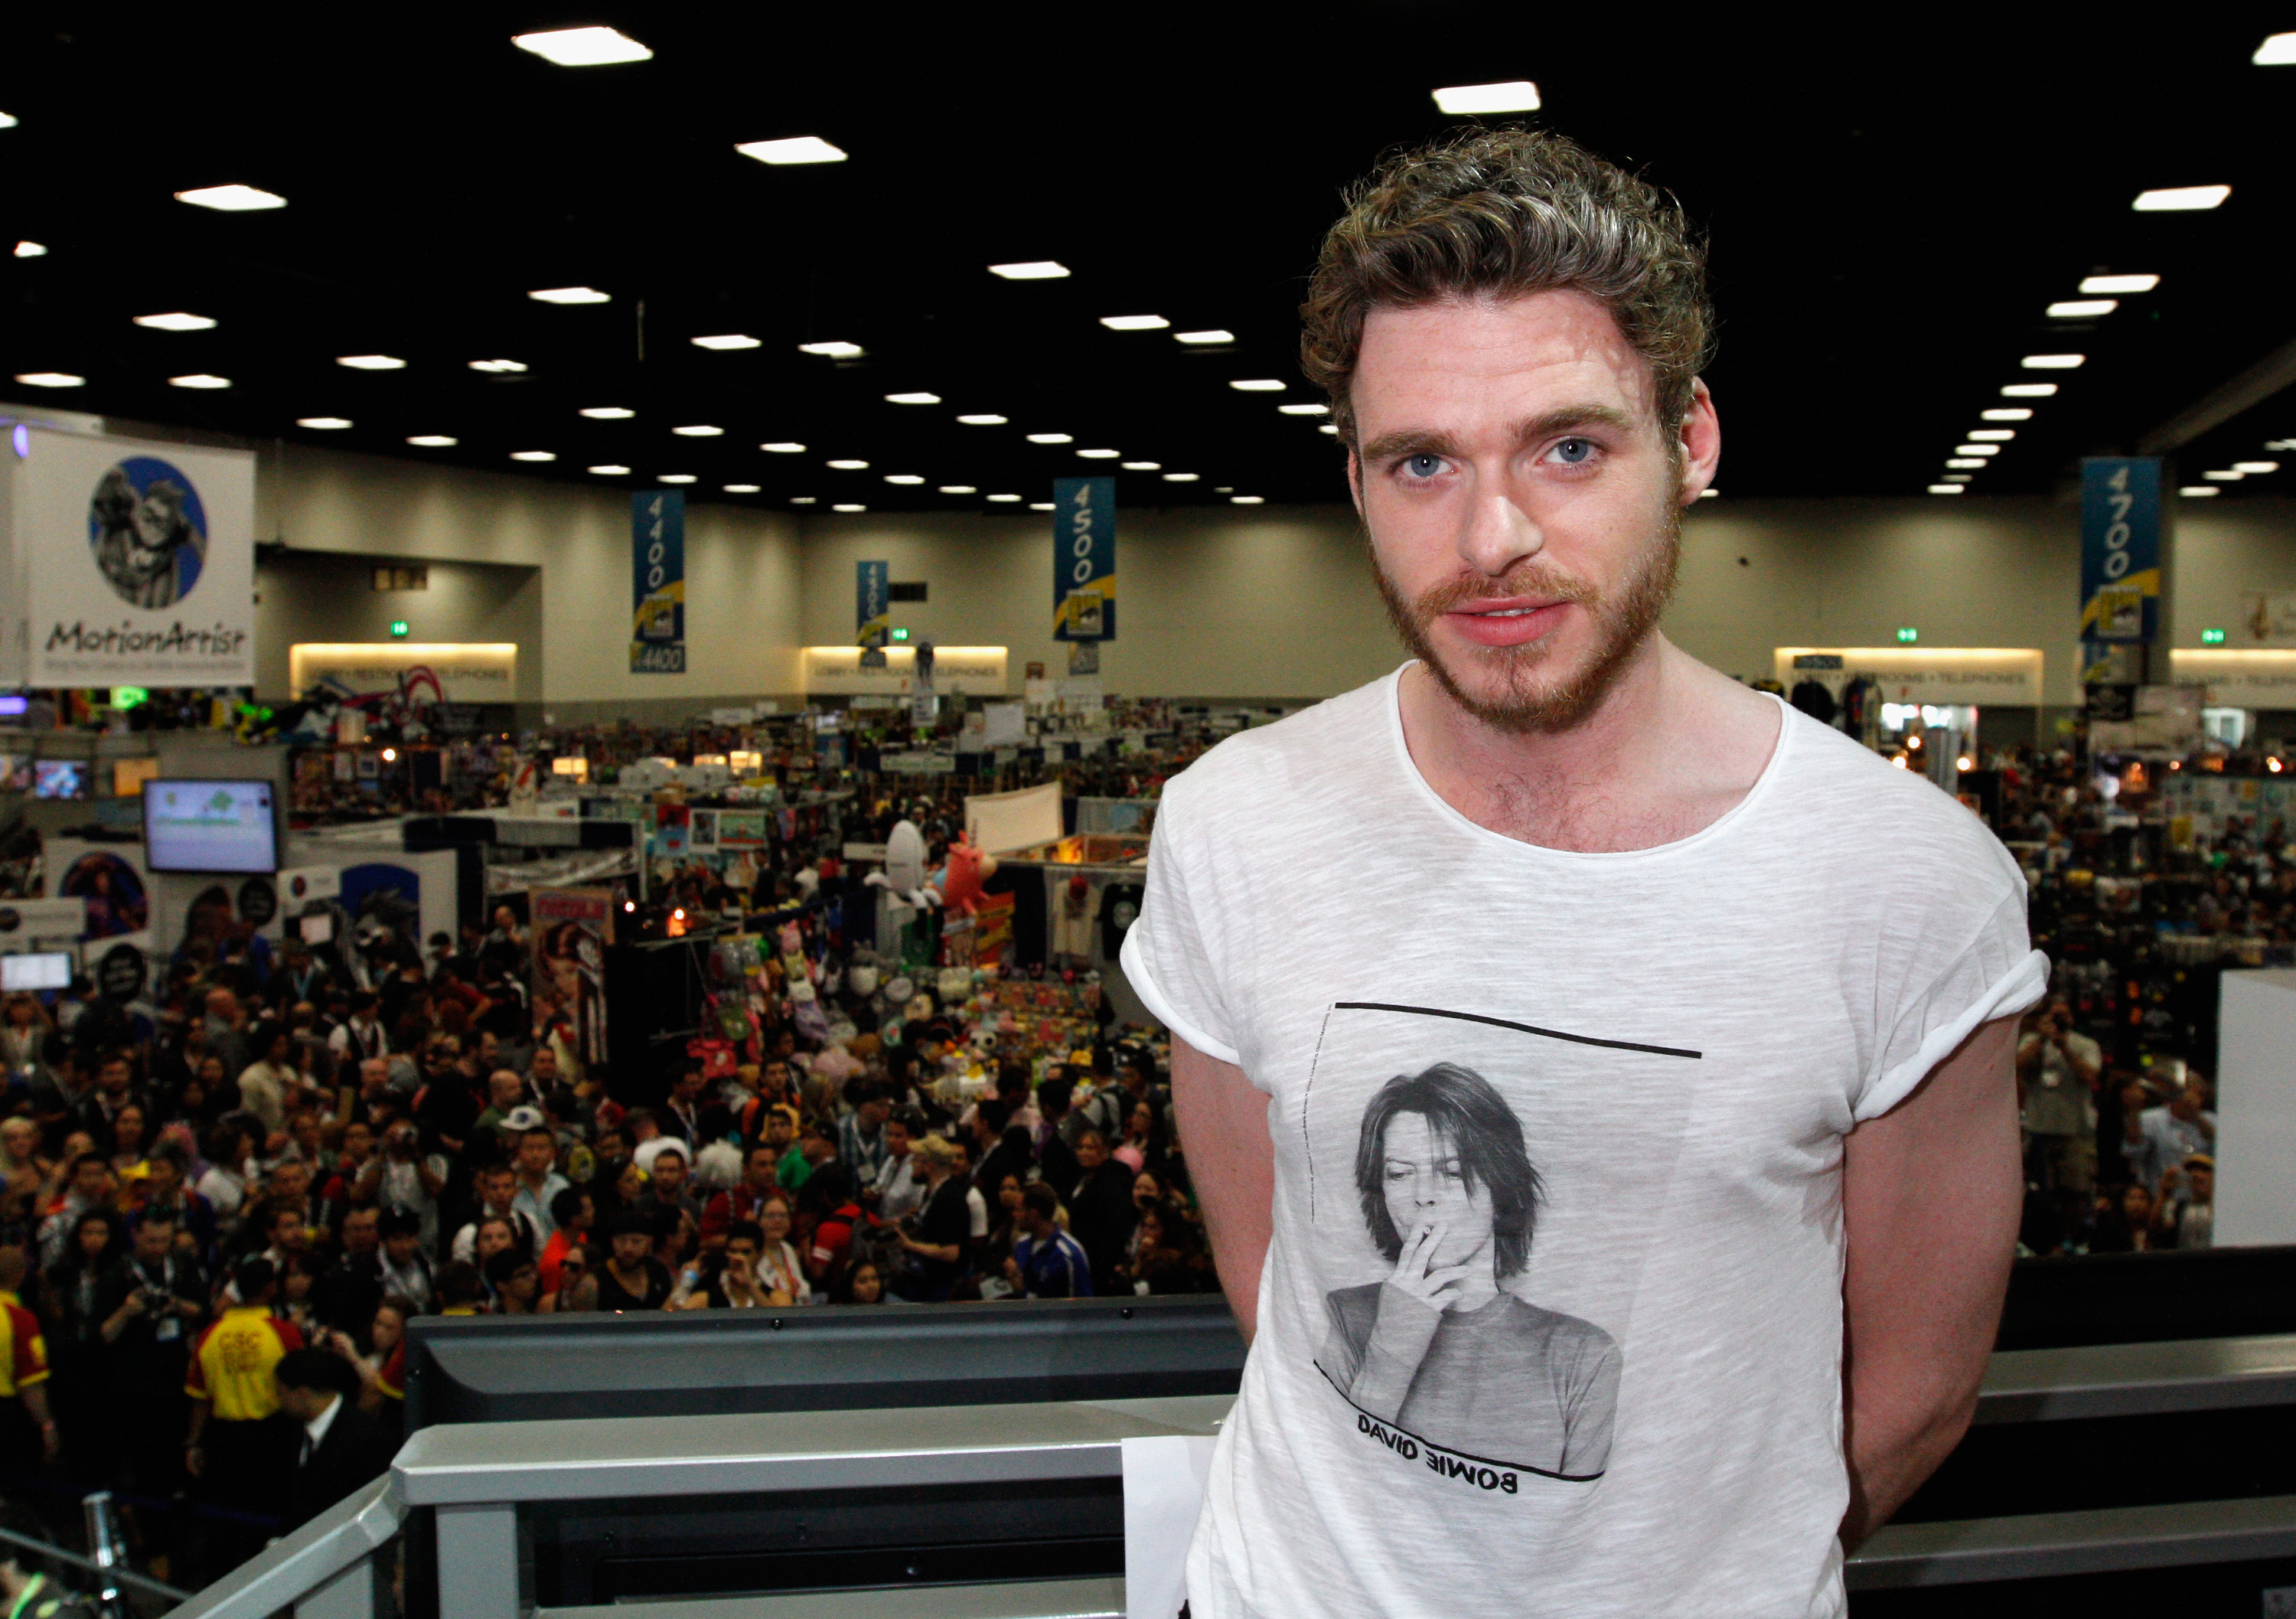 Richard Madden at an event for Game of Thrones (2011)